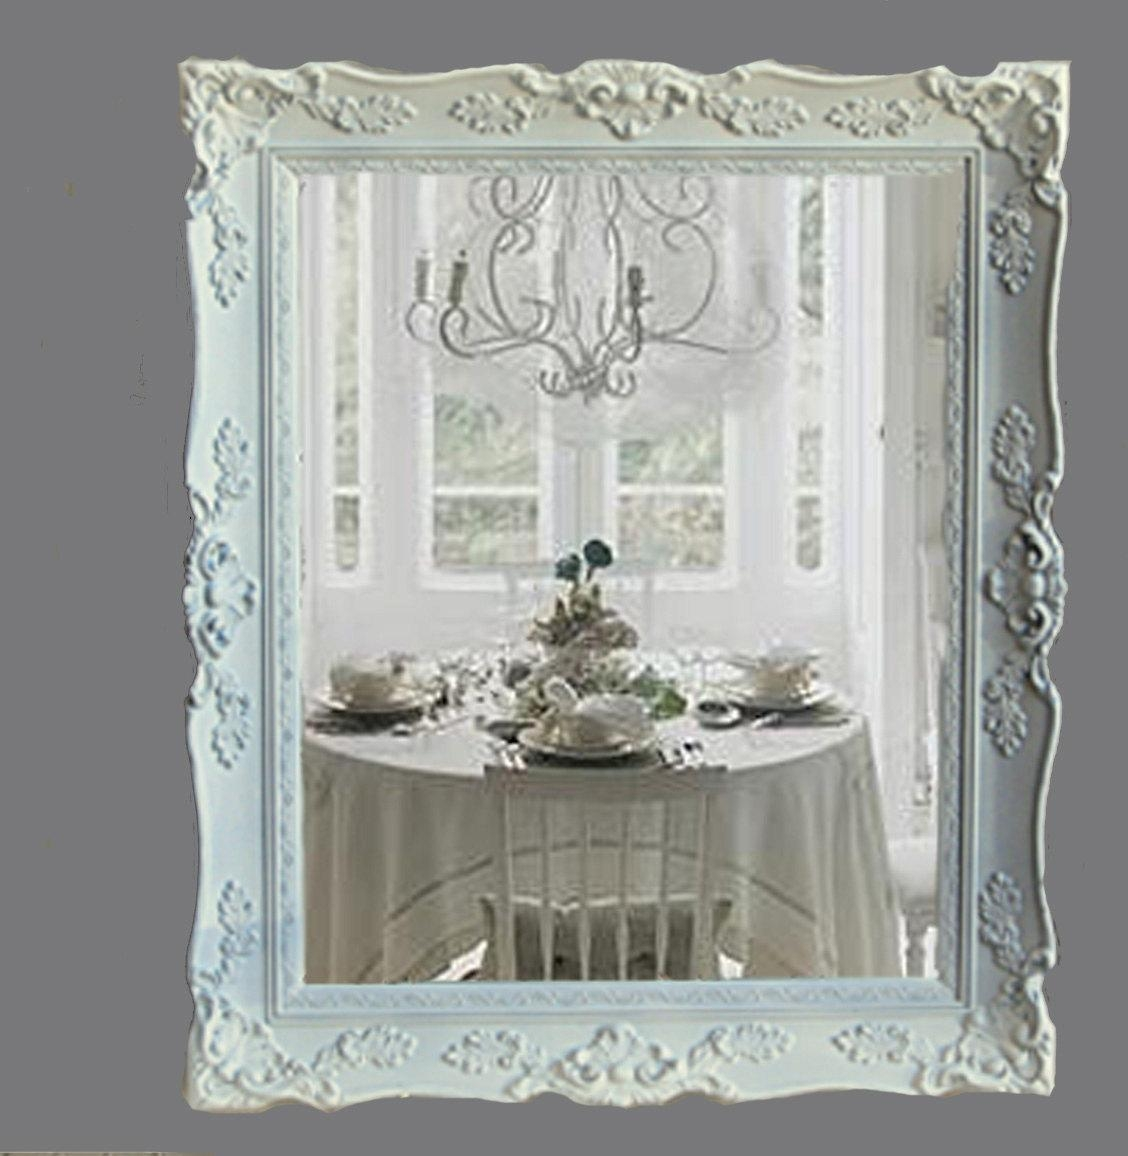 Shabby Chic Mirrors Images – Reverse Search Within Shabby Chic Mirrors (Image 15 of 20)